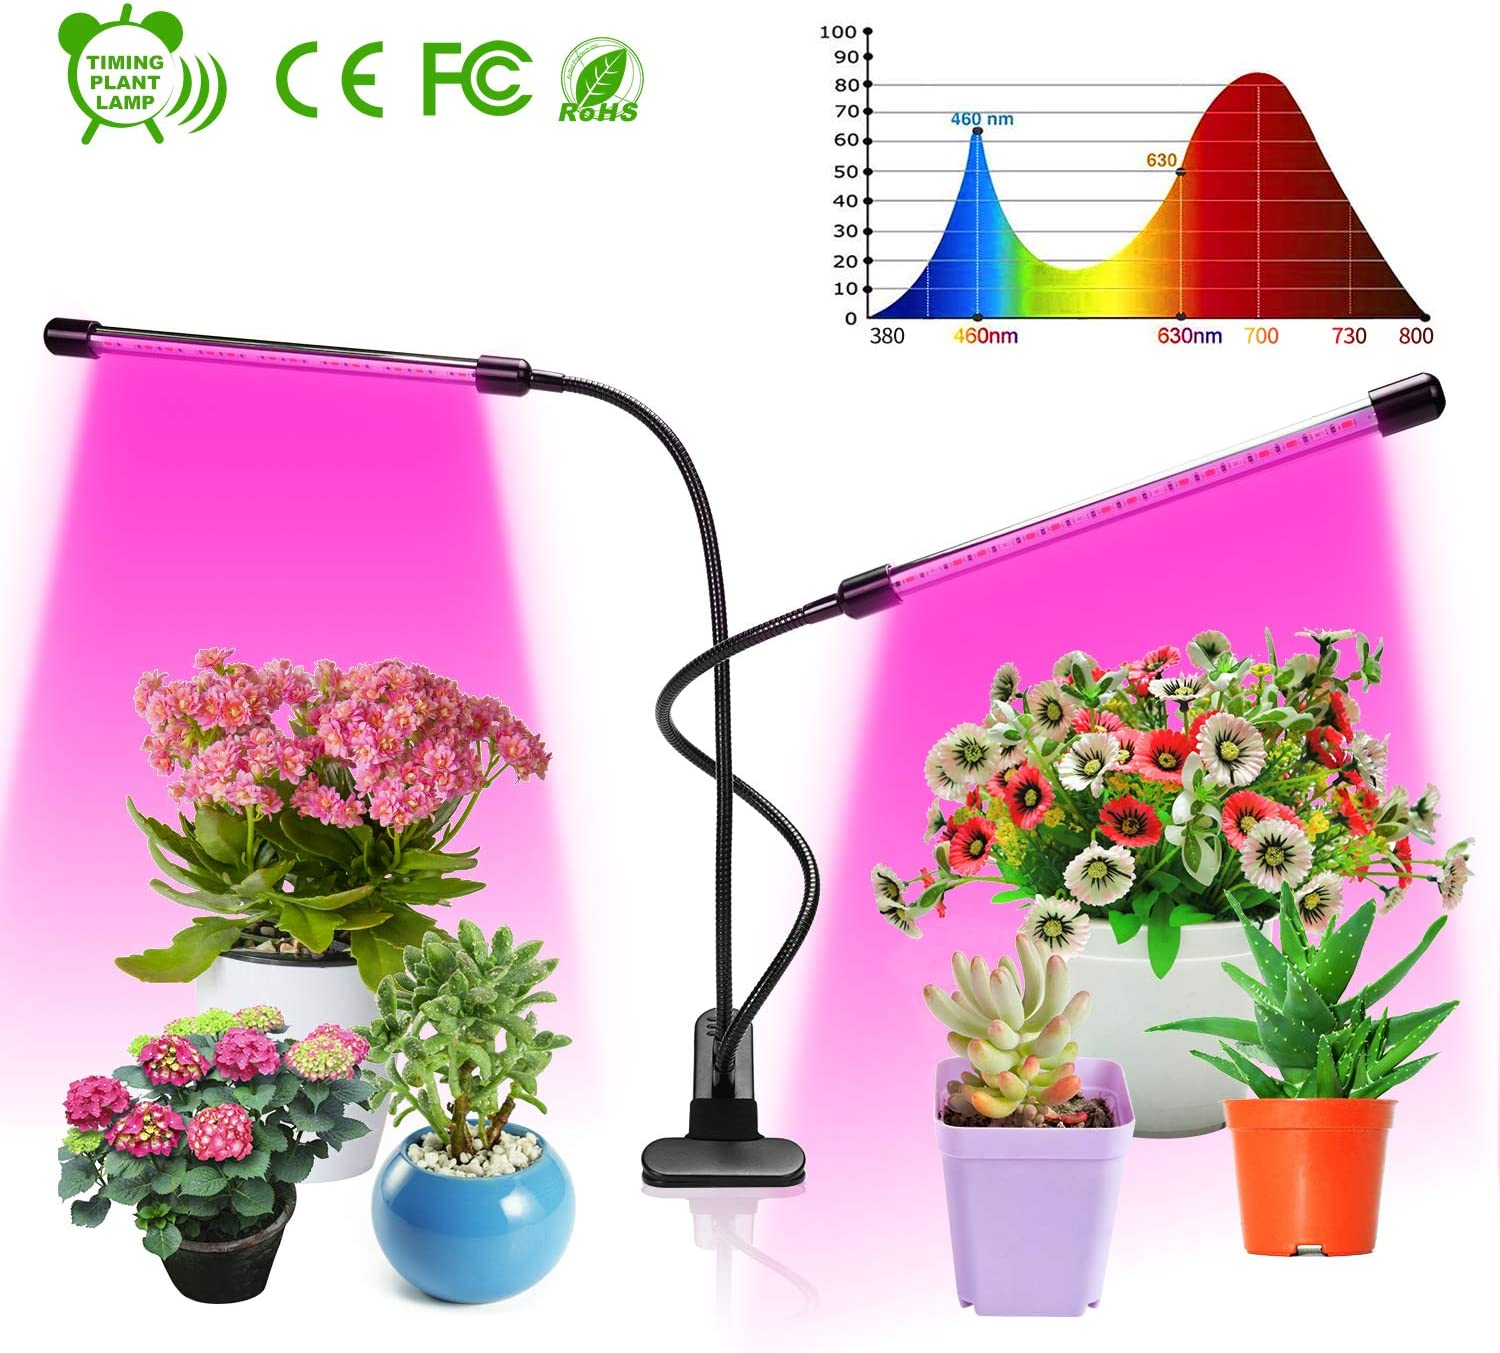 LED Plant Grow Light 800W, Bozily Full Spectrum LED Grow Lights for Indoor Plants Veg and Flower with Dimmer and Daisy Chain Function 168 pcs LED